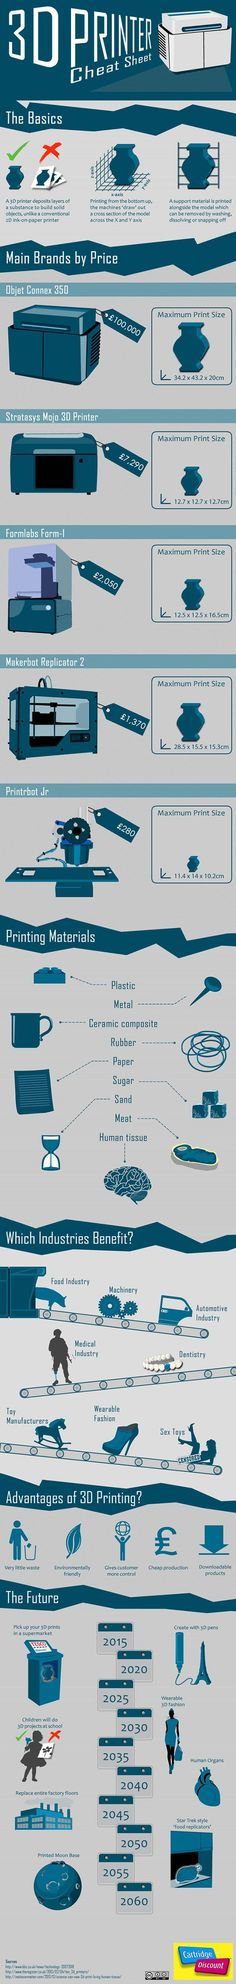 3D Printer Cheat Sheet [infographic]